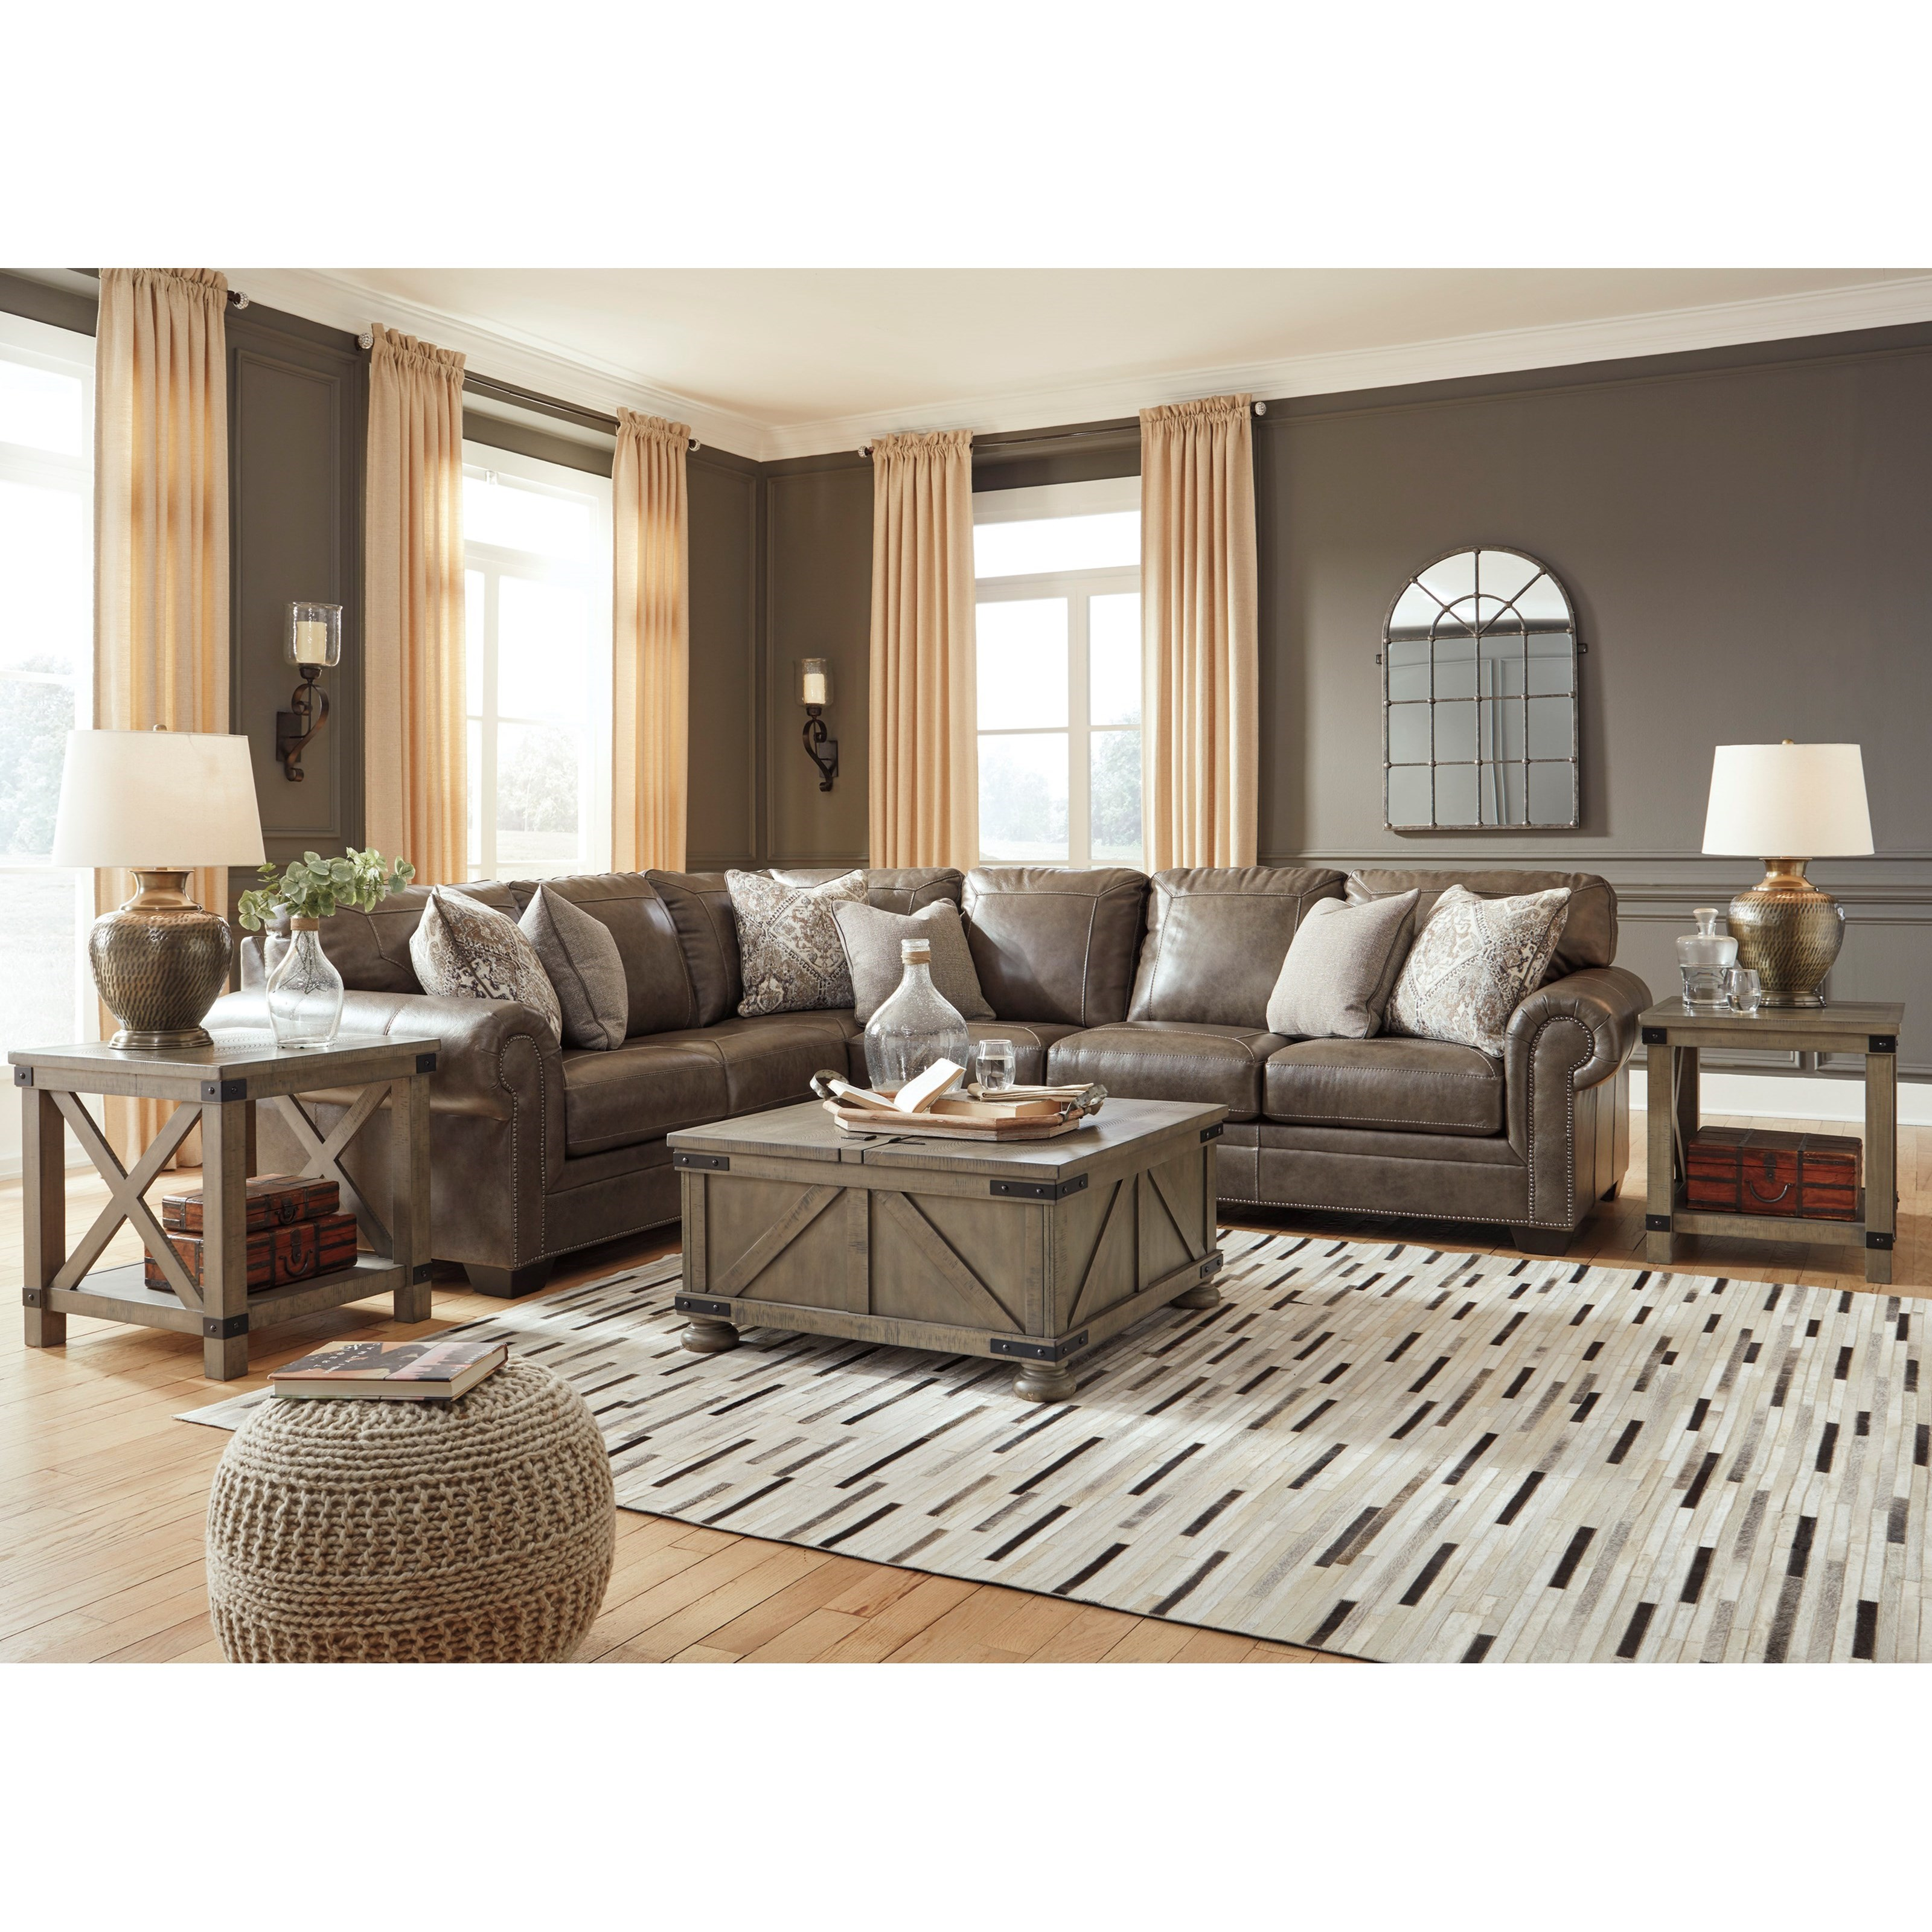 Signature Home Furnishings: Signature Design By Ashley Roleson Transitional 3-Piece